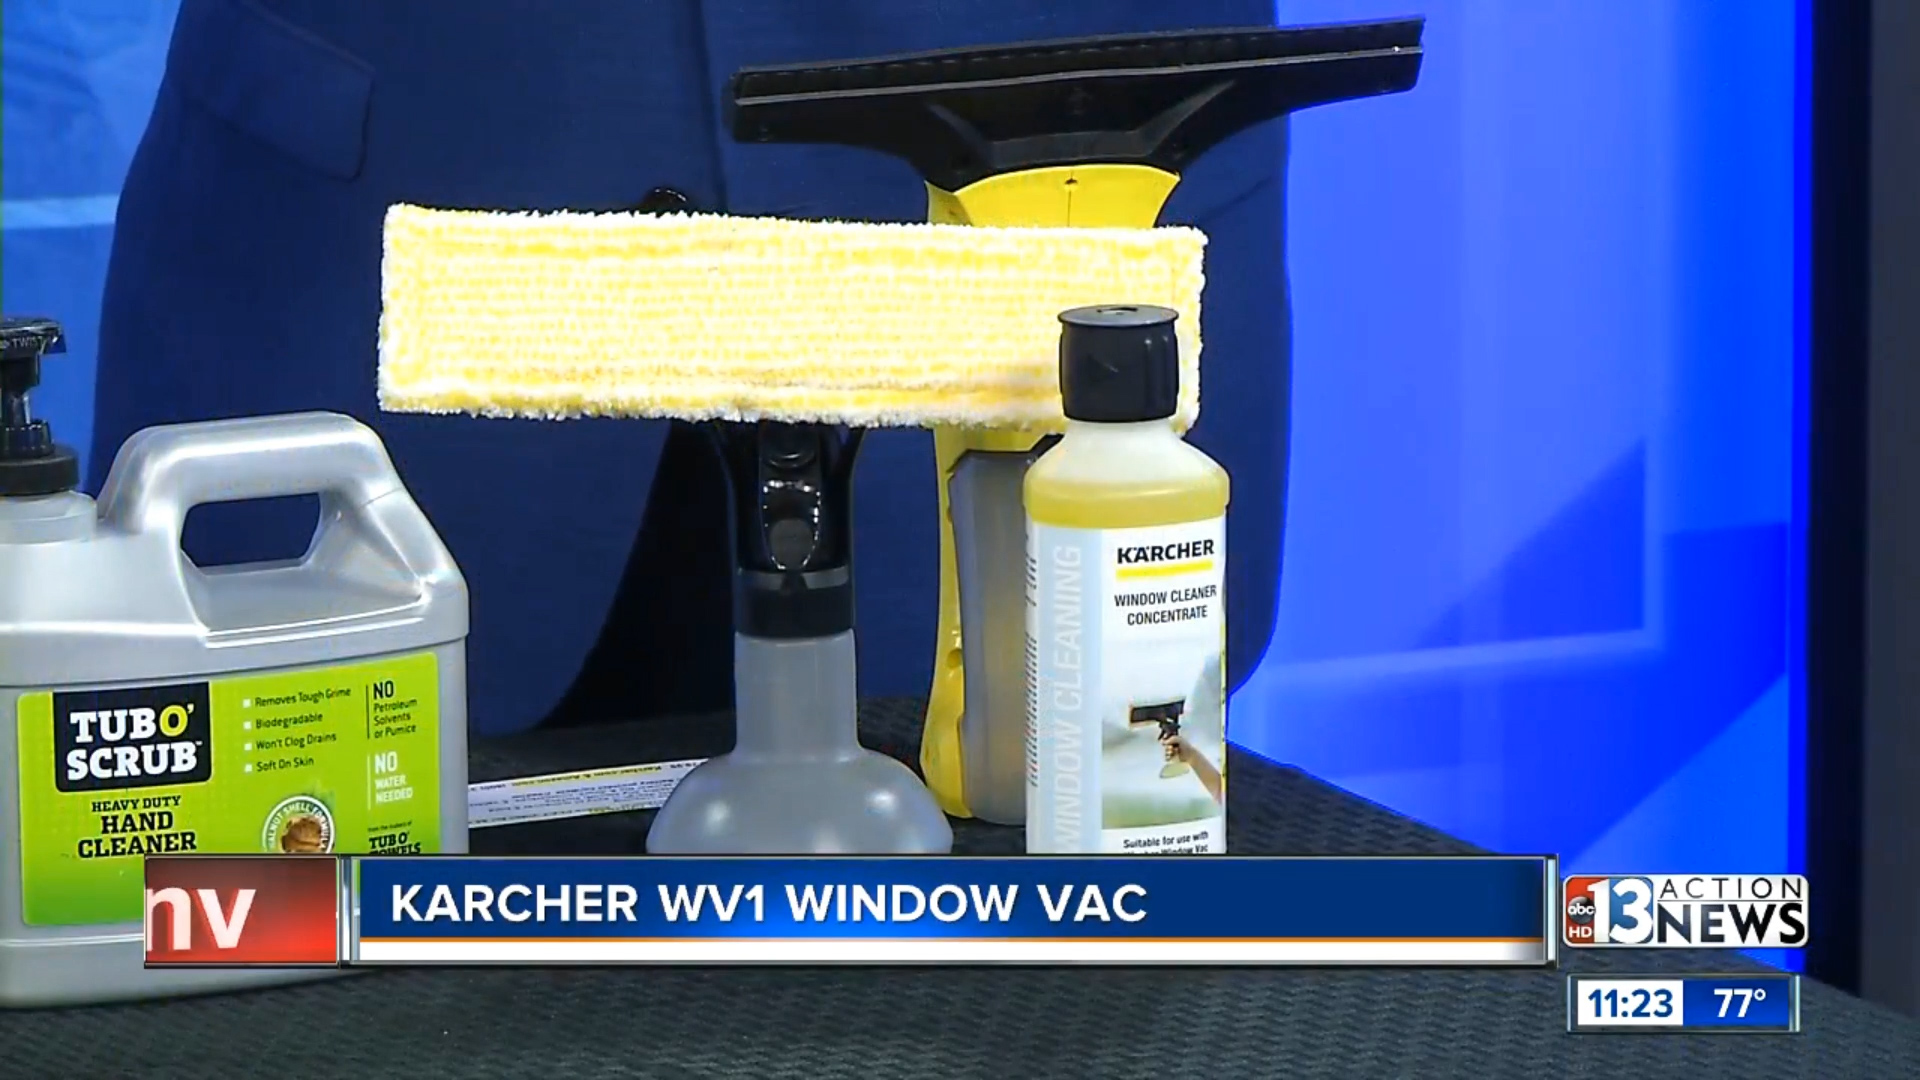 KARCHER WV1 WINDOW VAC - $79.99 at Karcher.com or Amazon.comShop Now